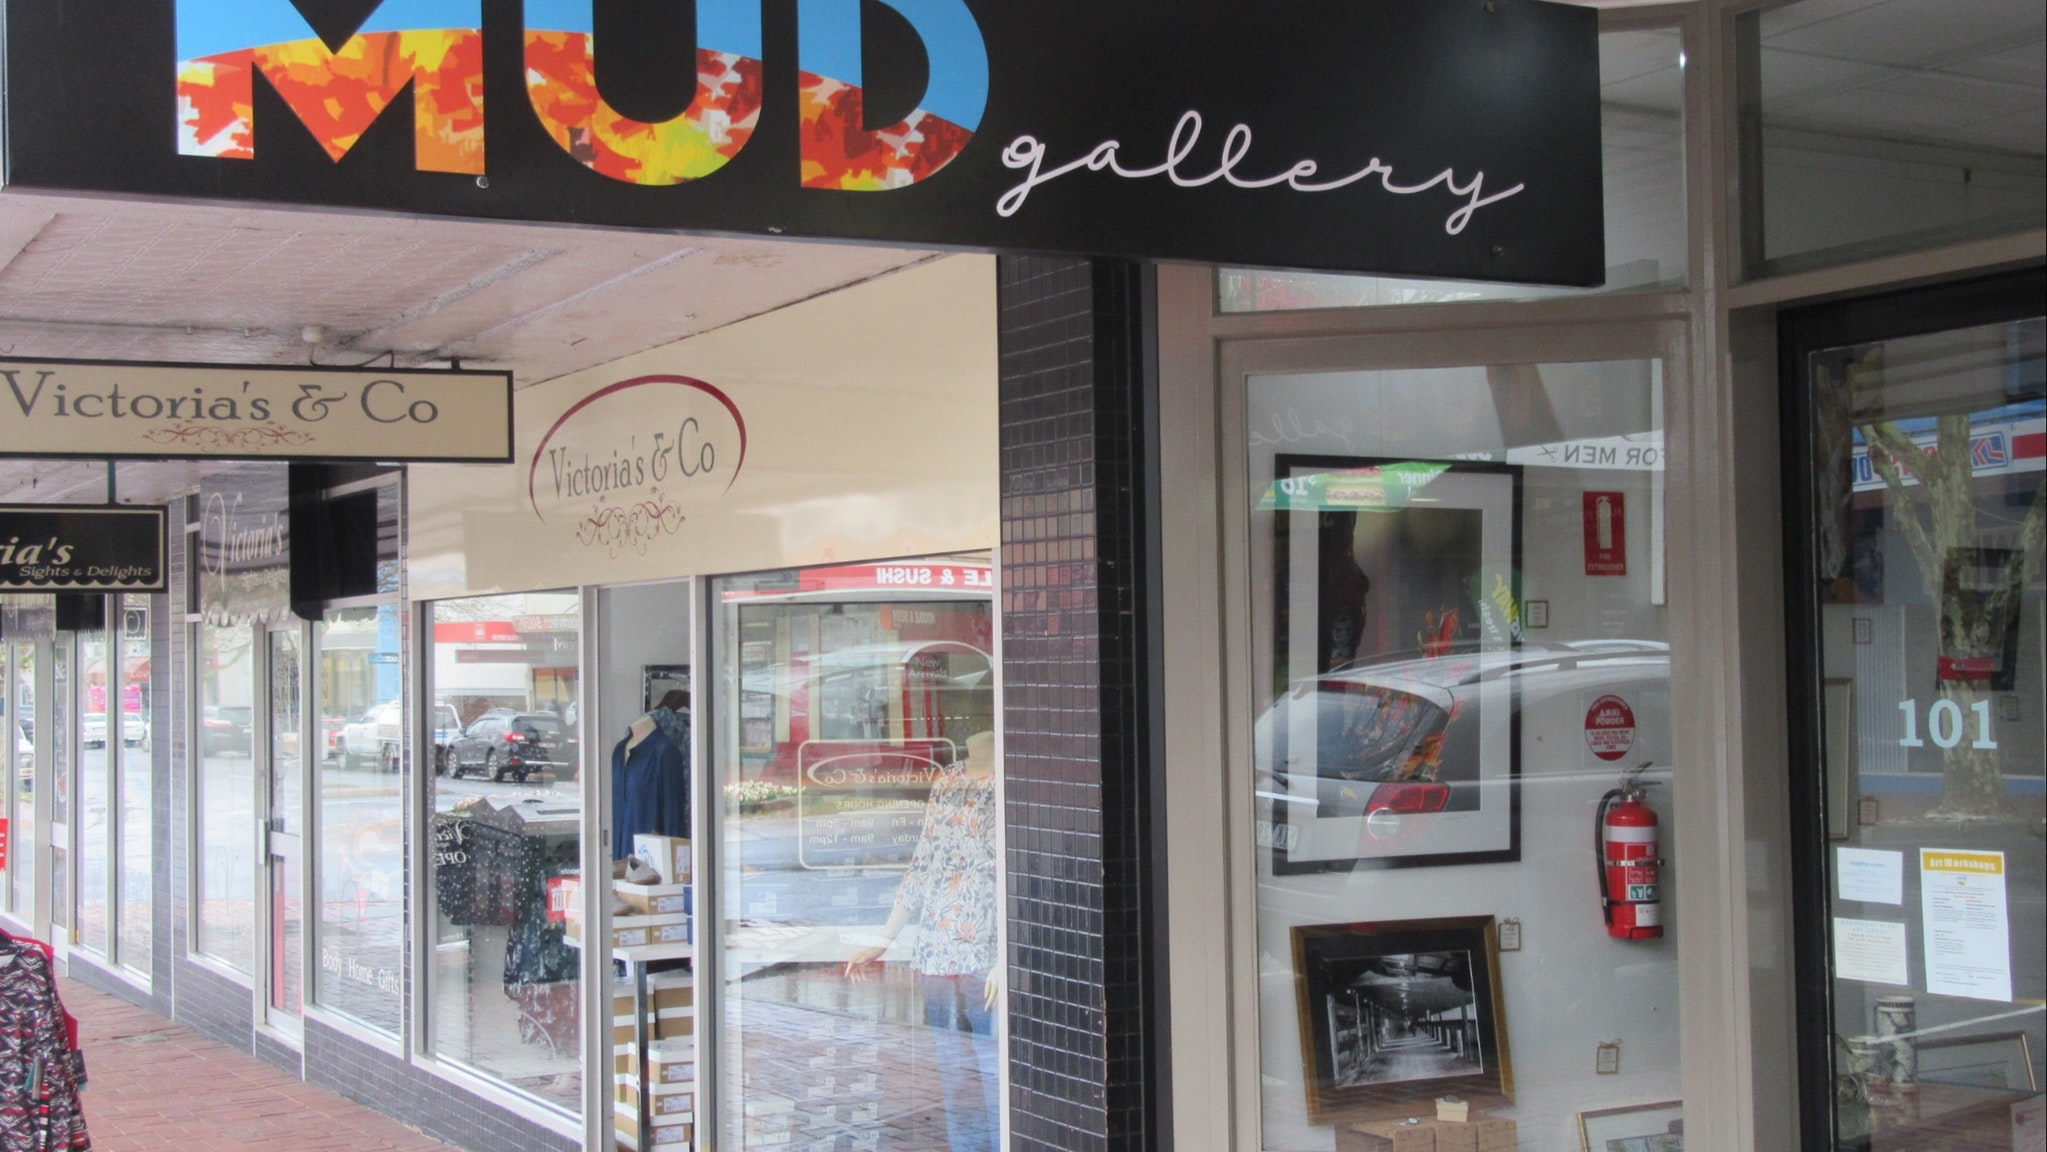 New signage on the Gallery